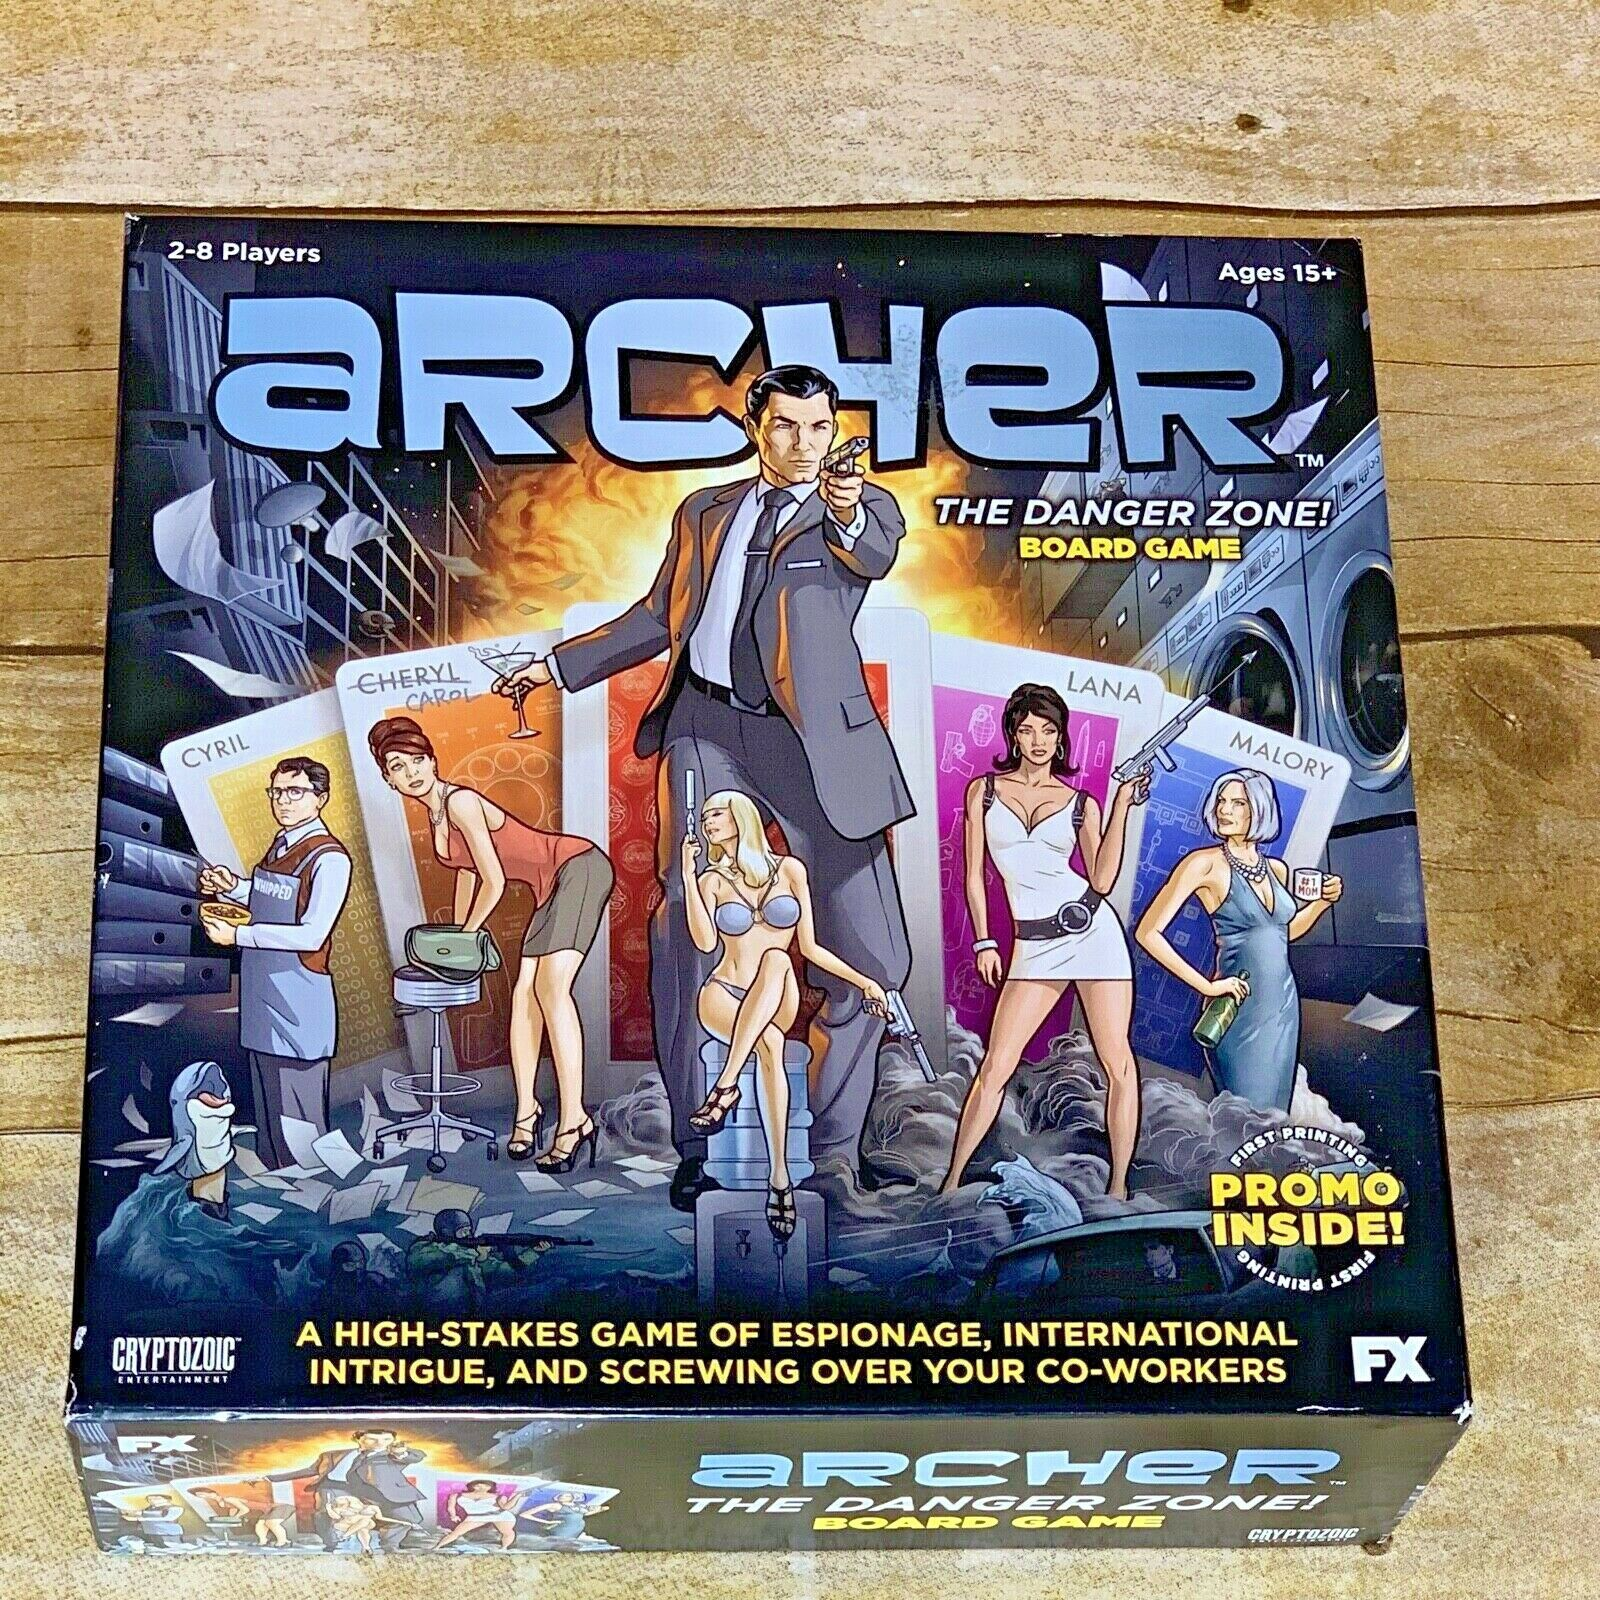 2014 Archer The Danger Zone Board Game Based On FX Animated Series Cryptozoic